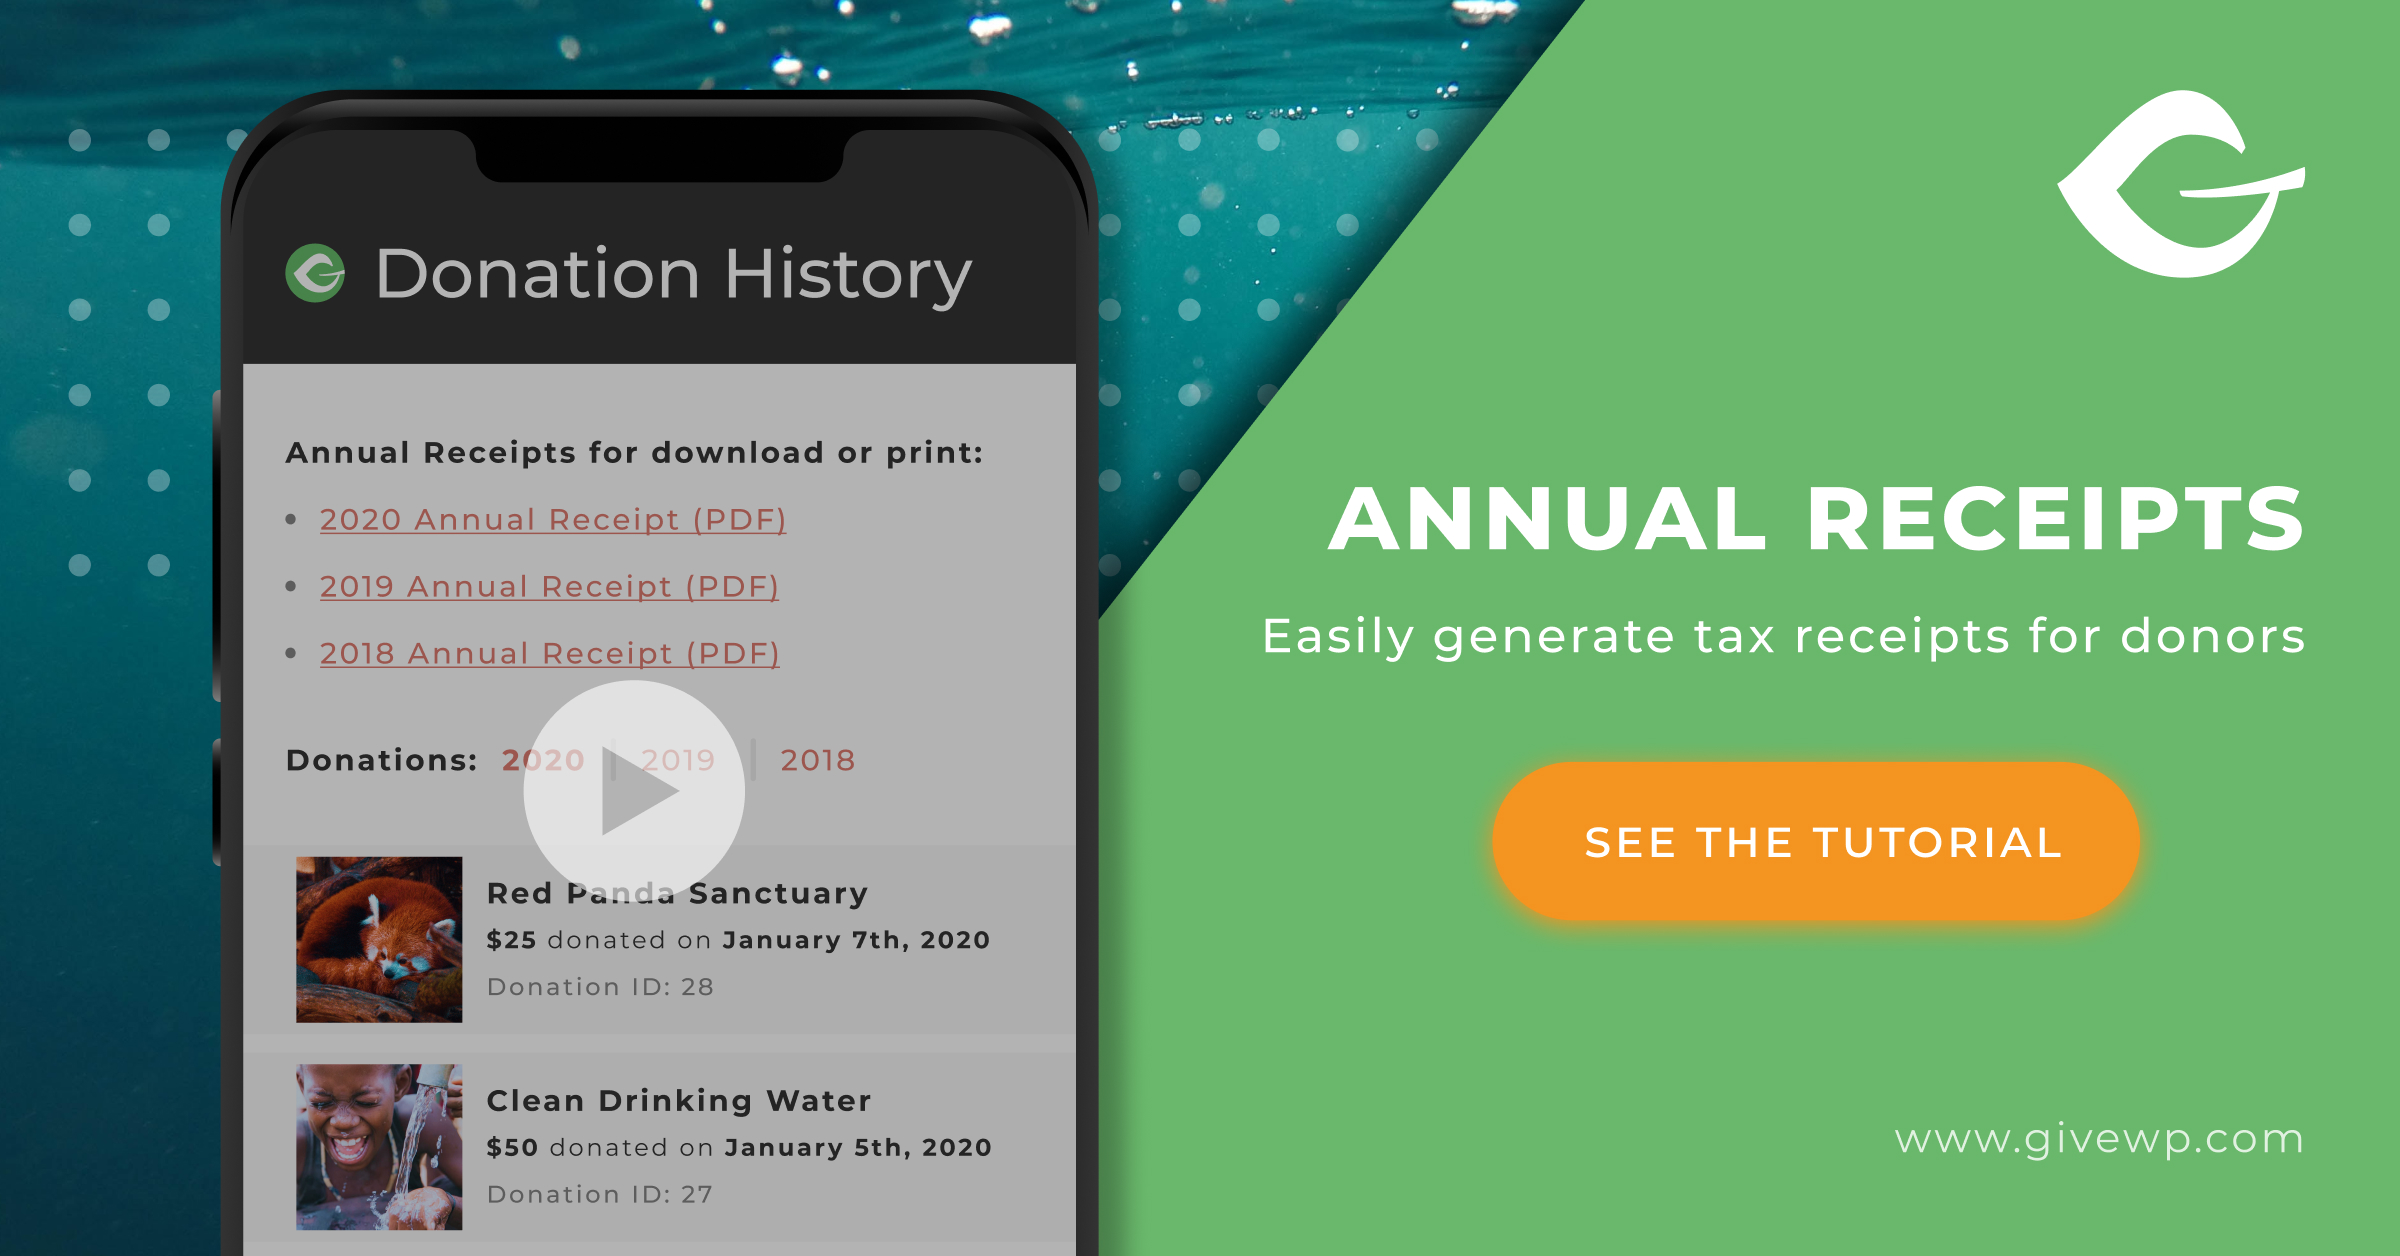 Great for promoting the Annual Receipts video tutorial available on the Annual Receipts conversion article.